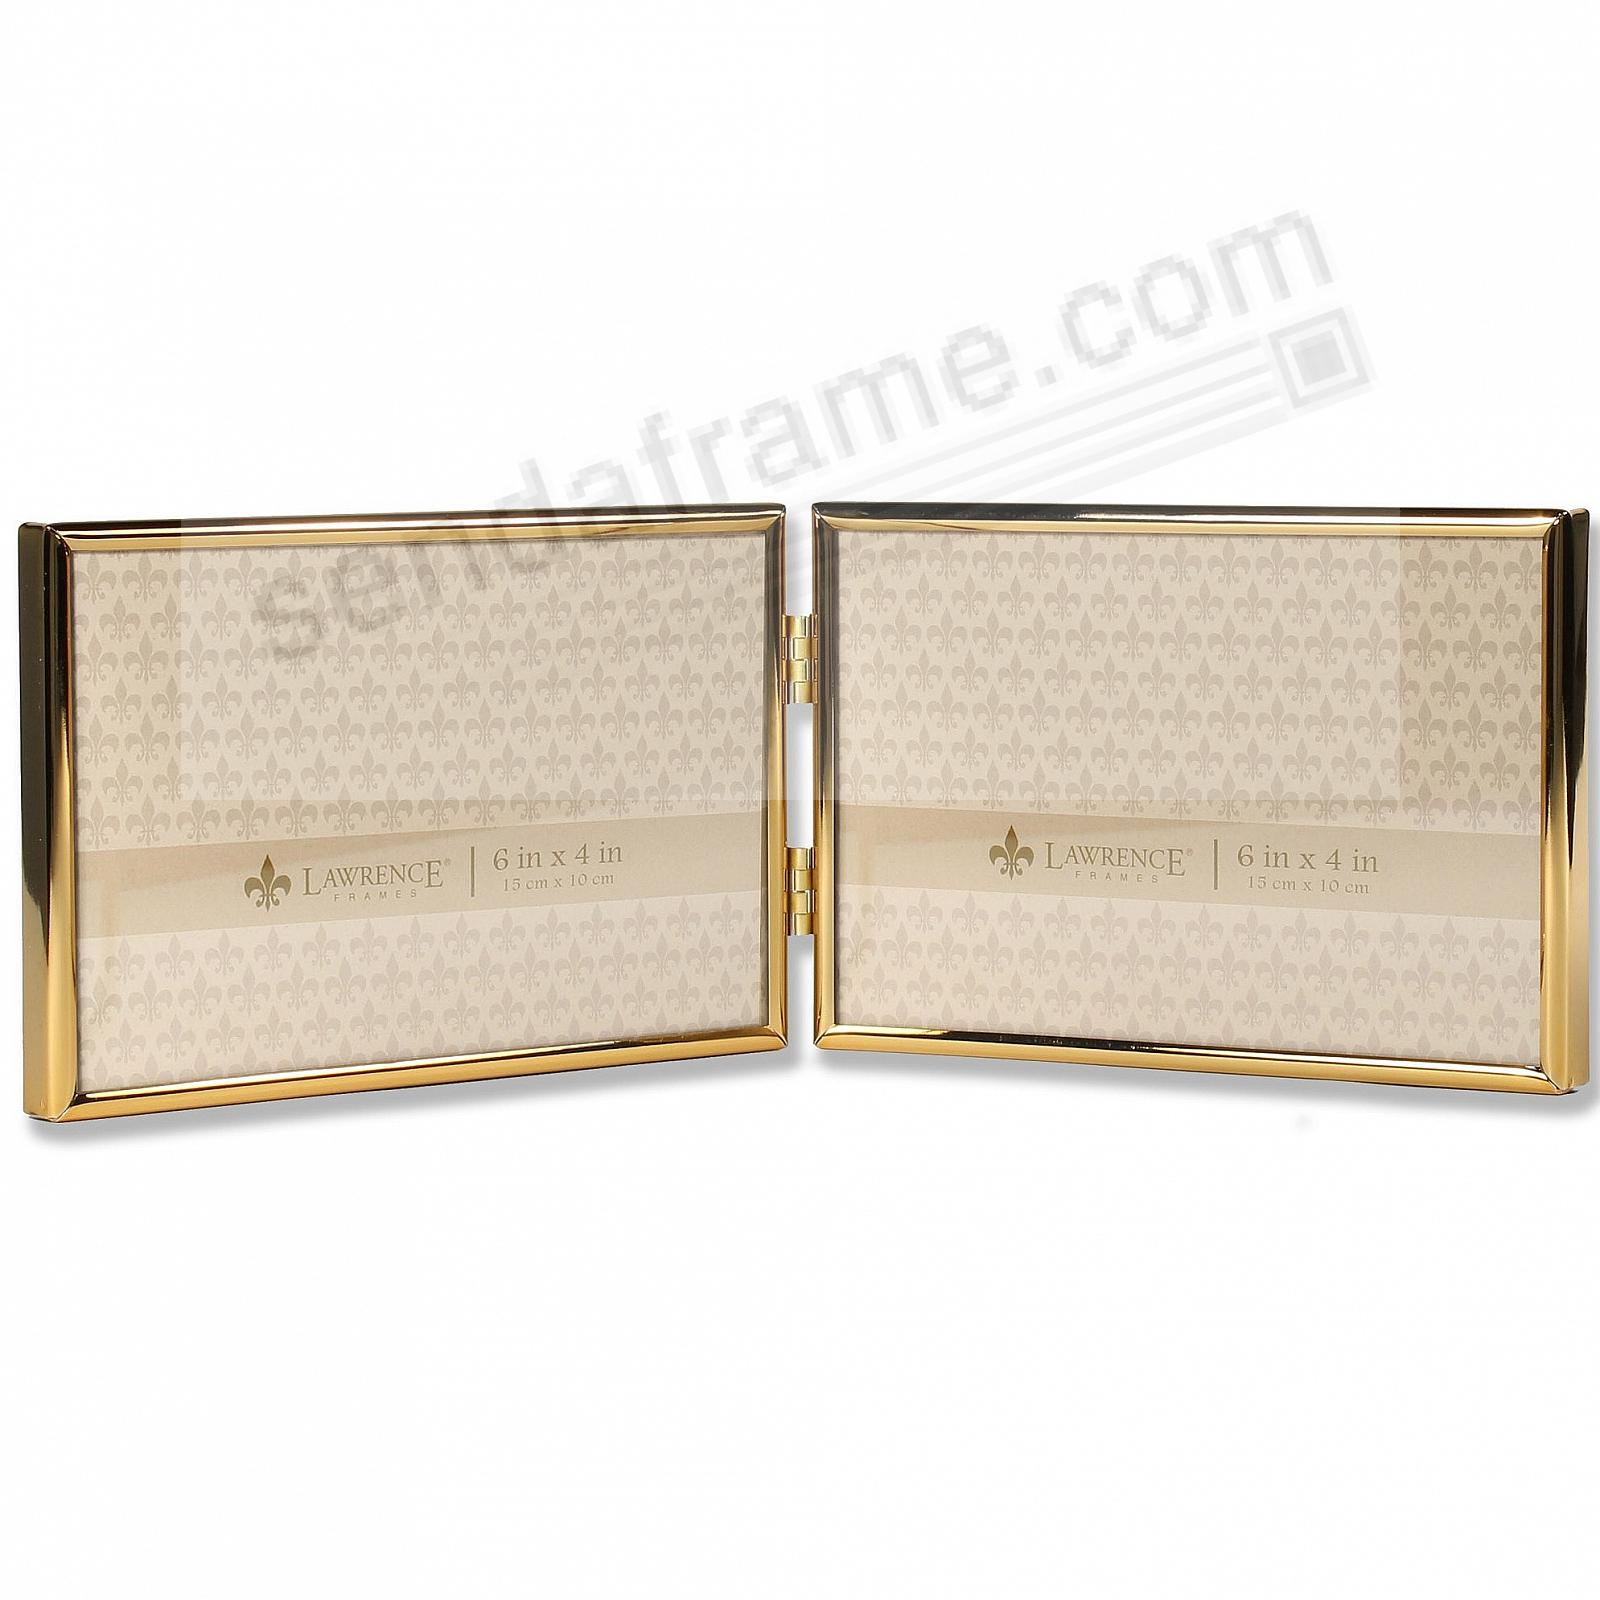 Polished SIMPLY GOLD double hinged 7x5 frame by Lawrence®